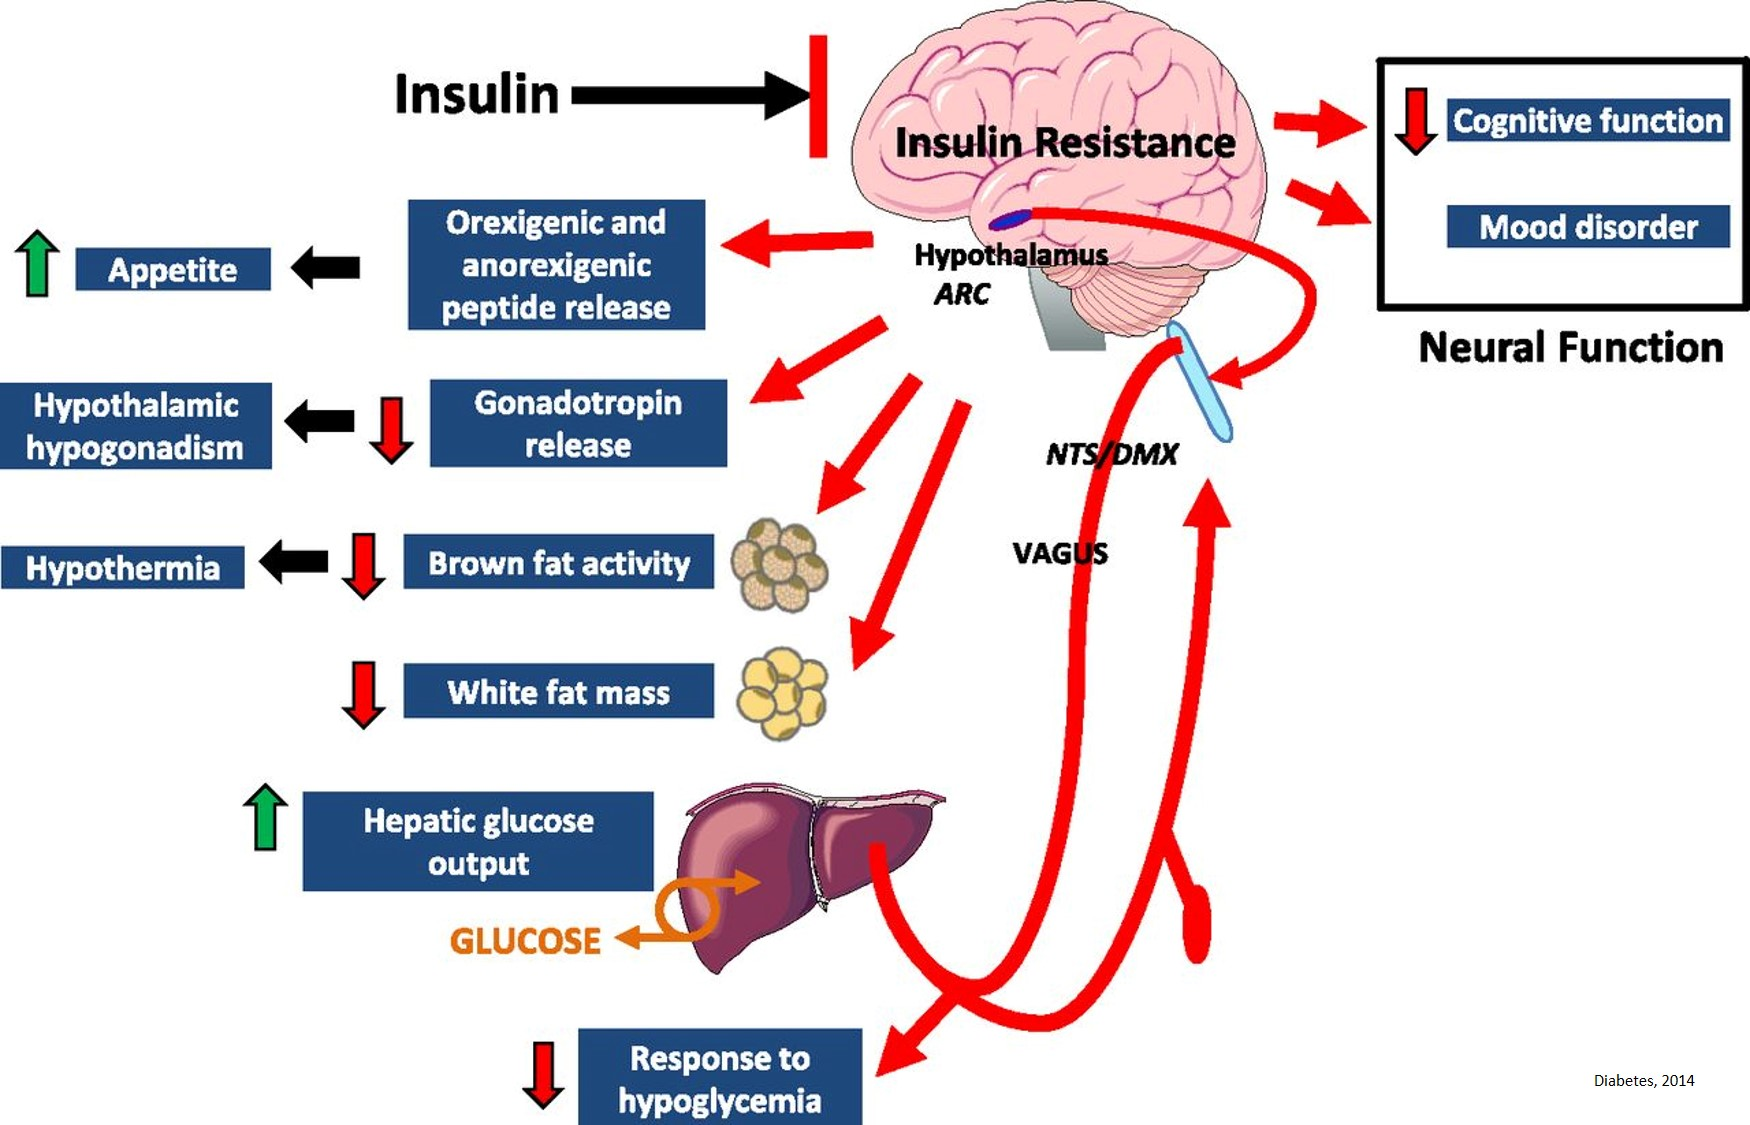 Insulin signaling failures in the brain linked to Alzheimer's disease